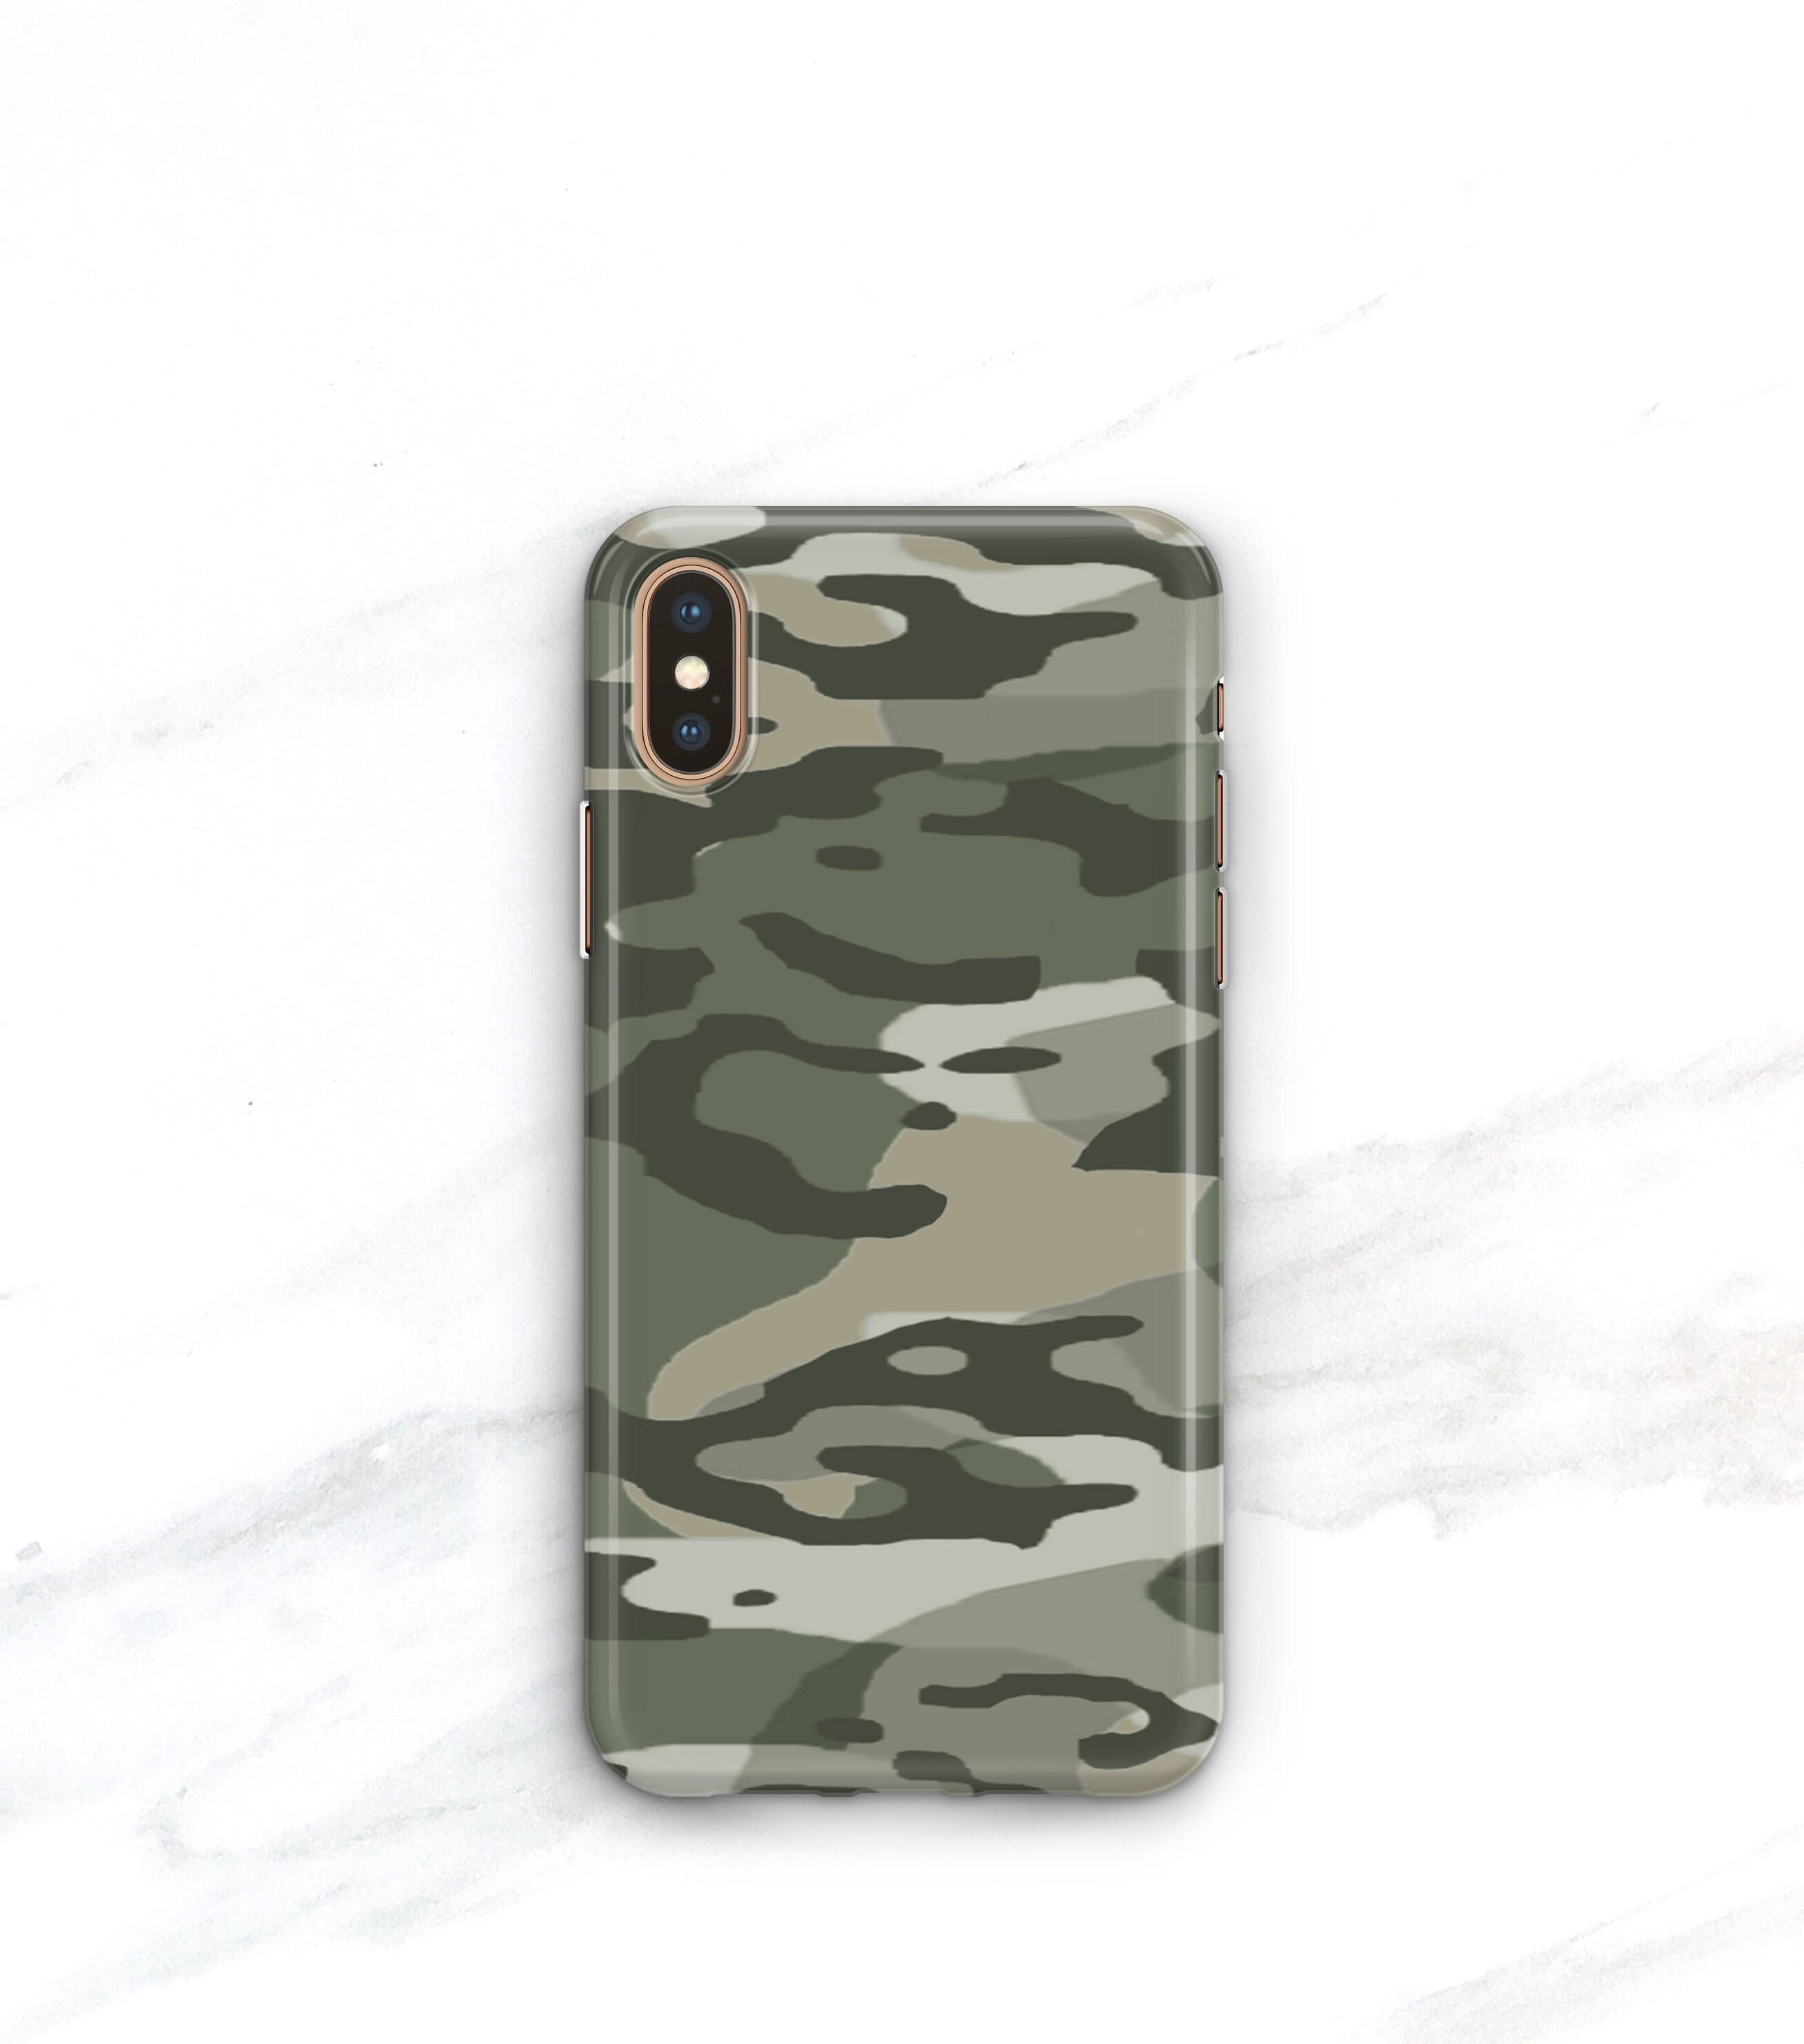 online retailer 73e2d 7be79 Camo Phone Case iPhone Xs Max Case iPhone 8 Plus Case iPhone 8 iPhone X Xr  7 SE 6S Plus Galaxy S8 S9 Army Green Camouflage Galaxy S10 Plus